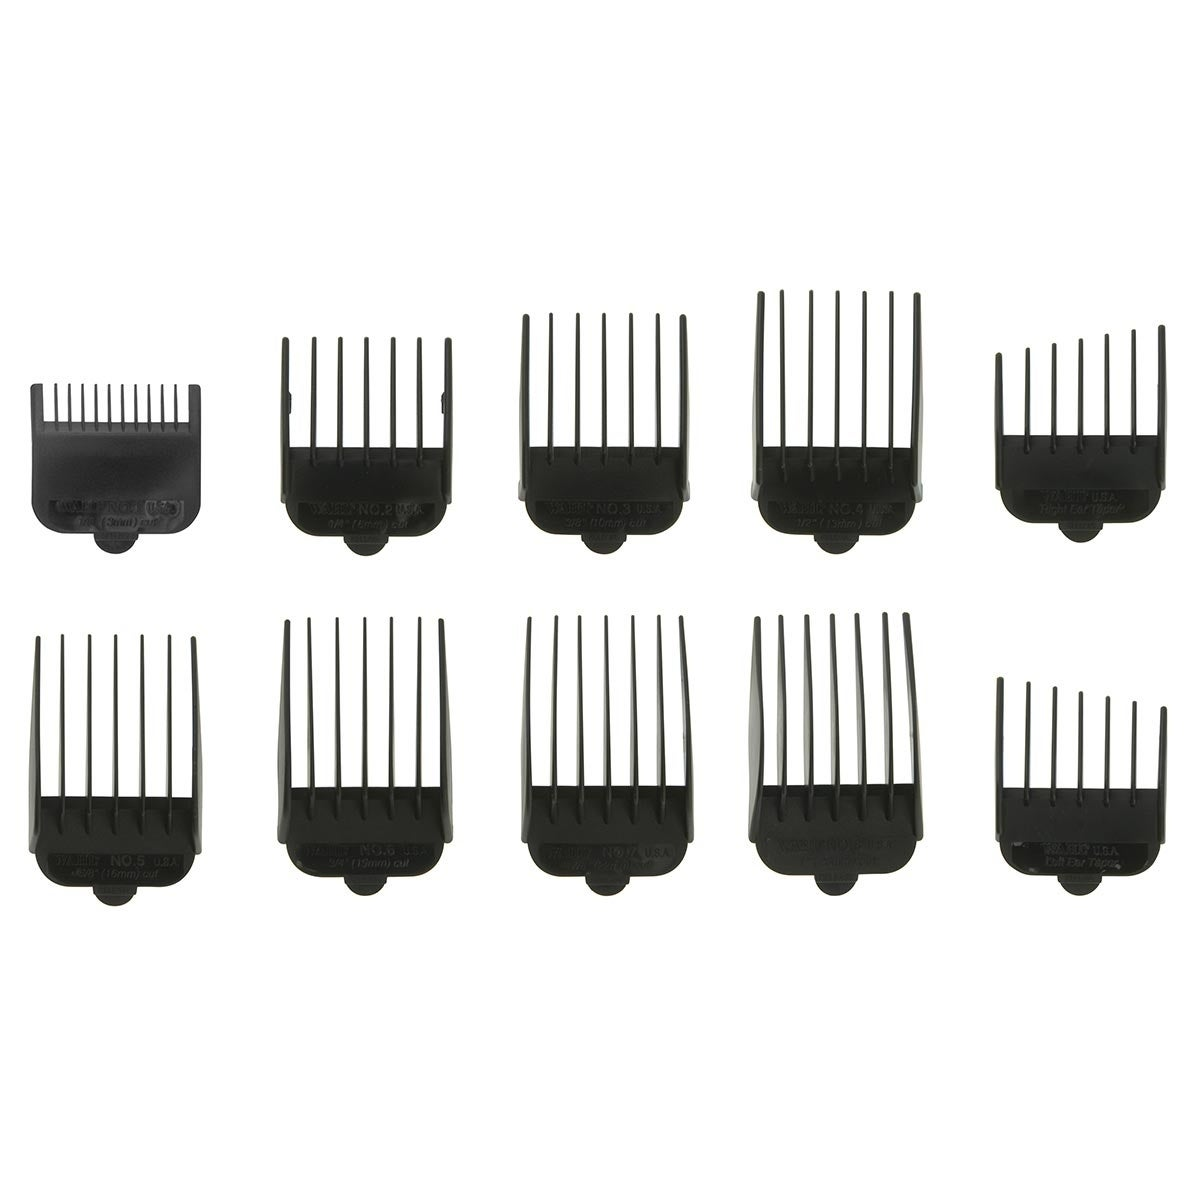 Wahl Clipper Comb Kit, Silver stainless steel